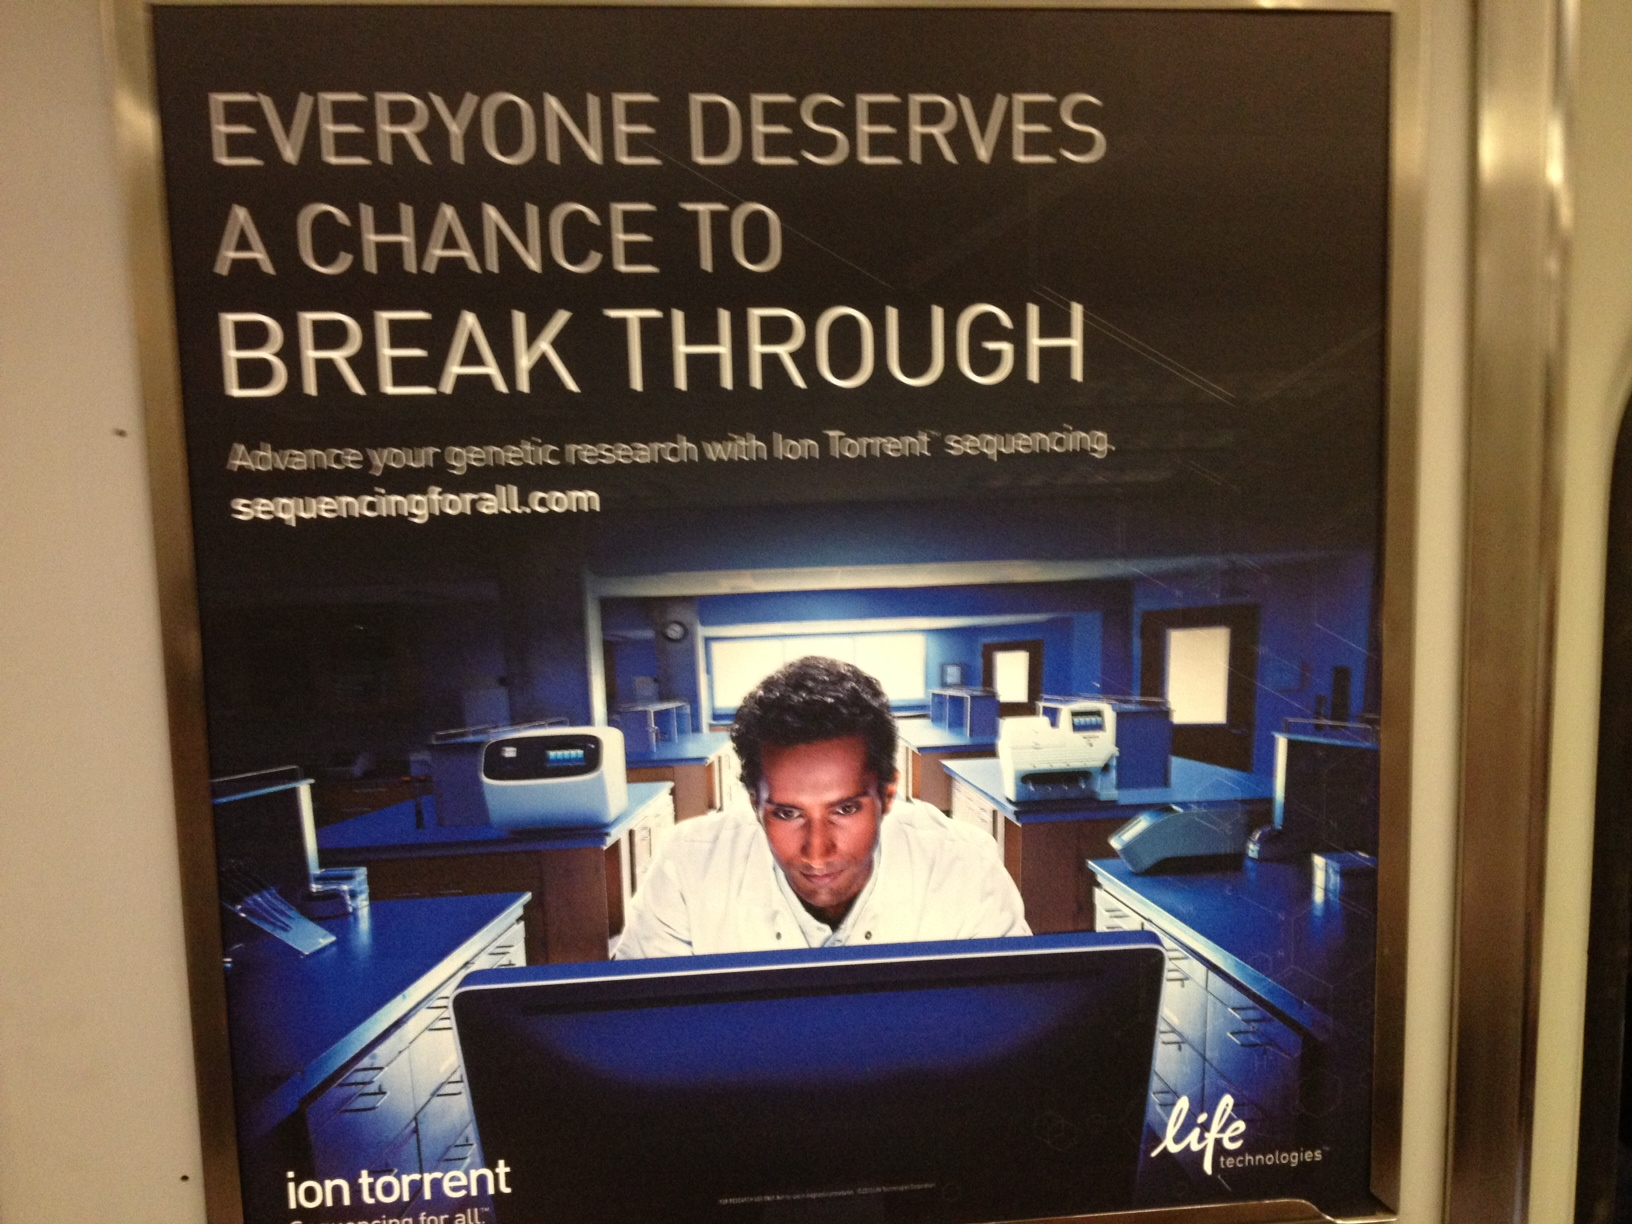 ion torret subway ad